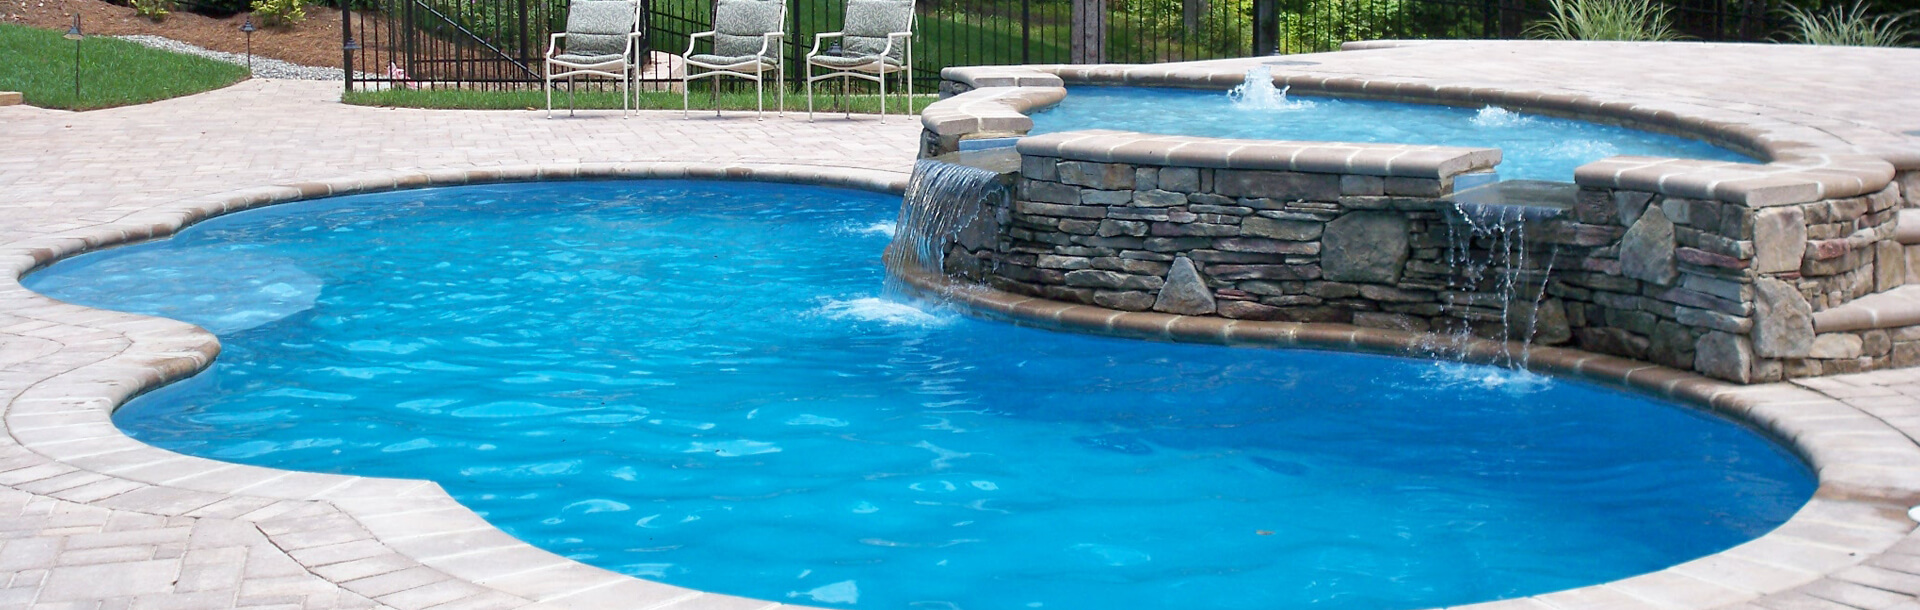 aquacade outdoor inground pool with waterfall and fountain